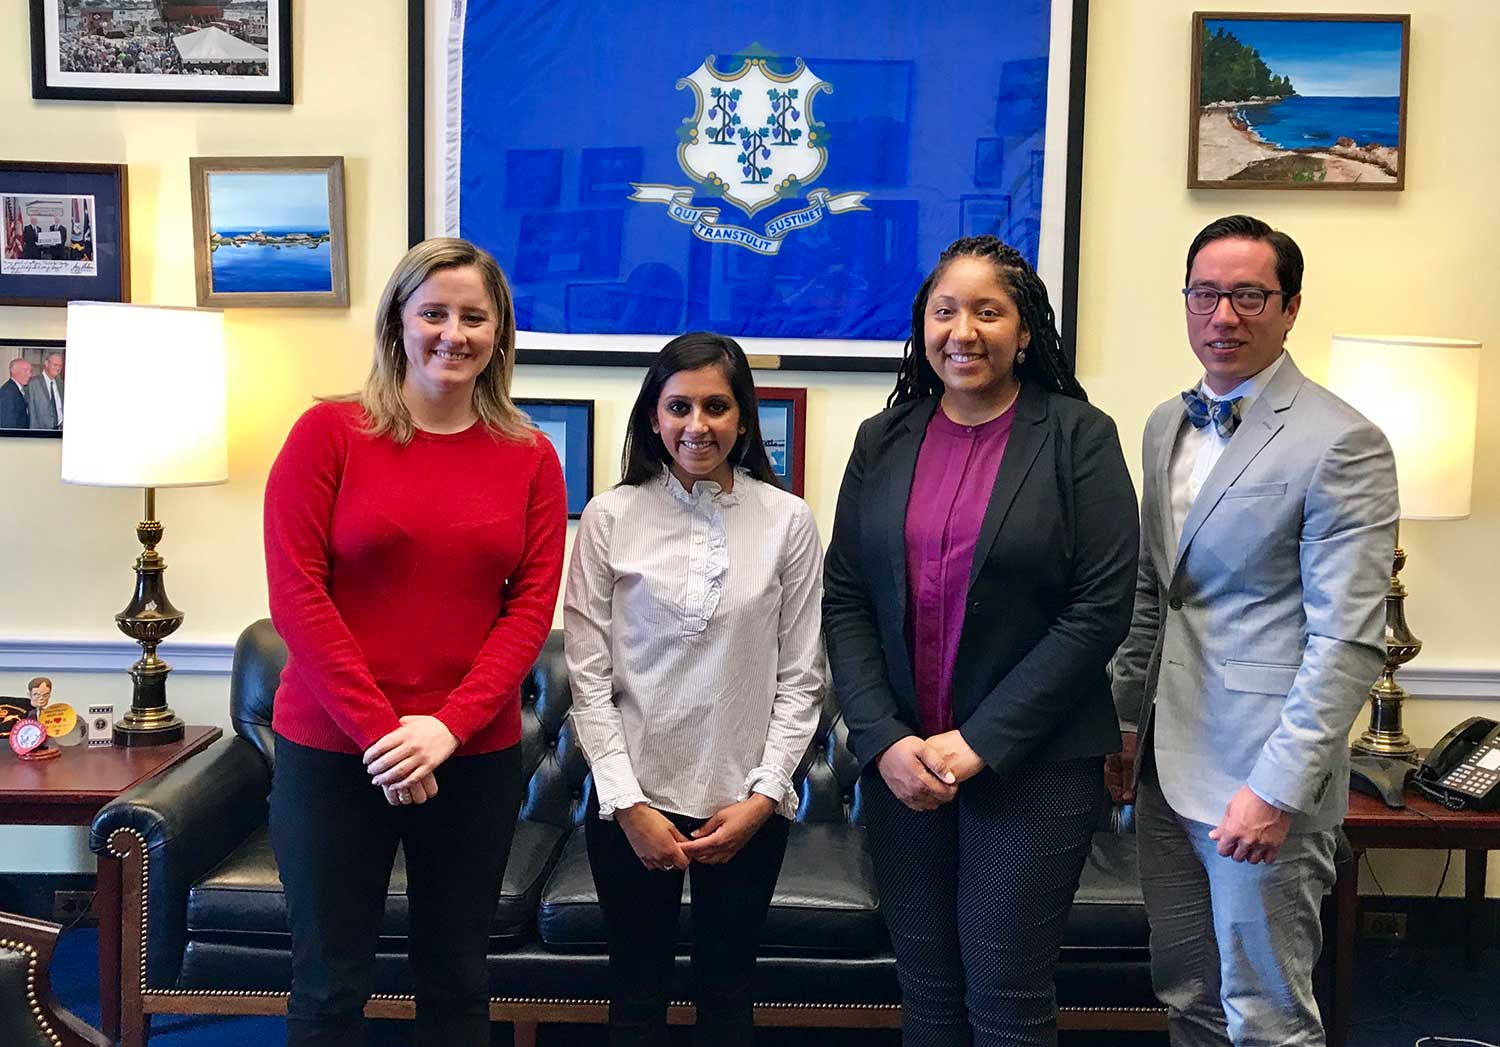 UConn graduate students with Congressman Courtney's legislative director in Washington D.C. (left to right) Alexa Combelic, Tulsi Patel, Tanisha Williams, Manuel Rivas)